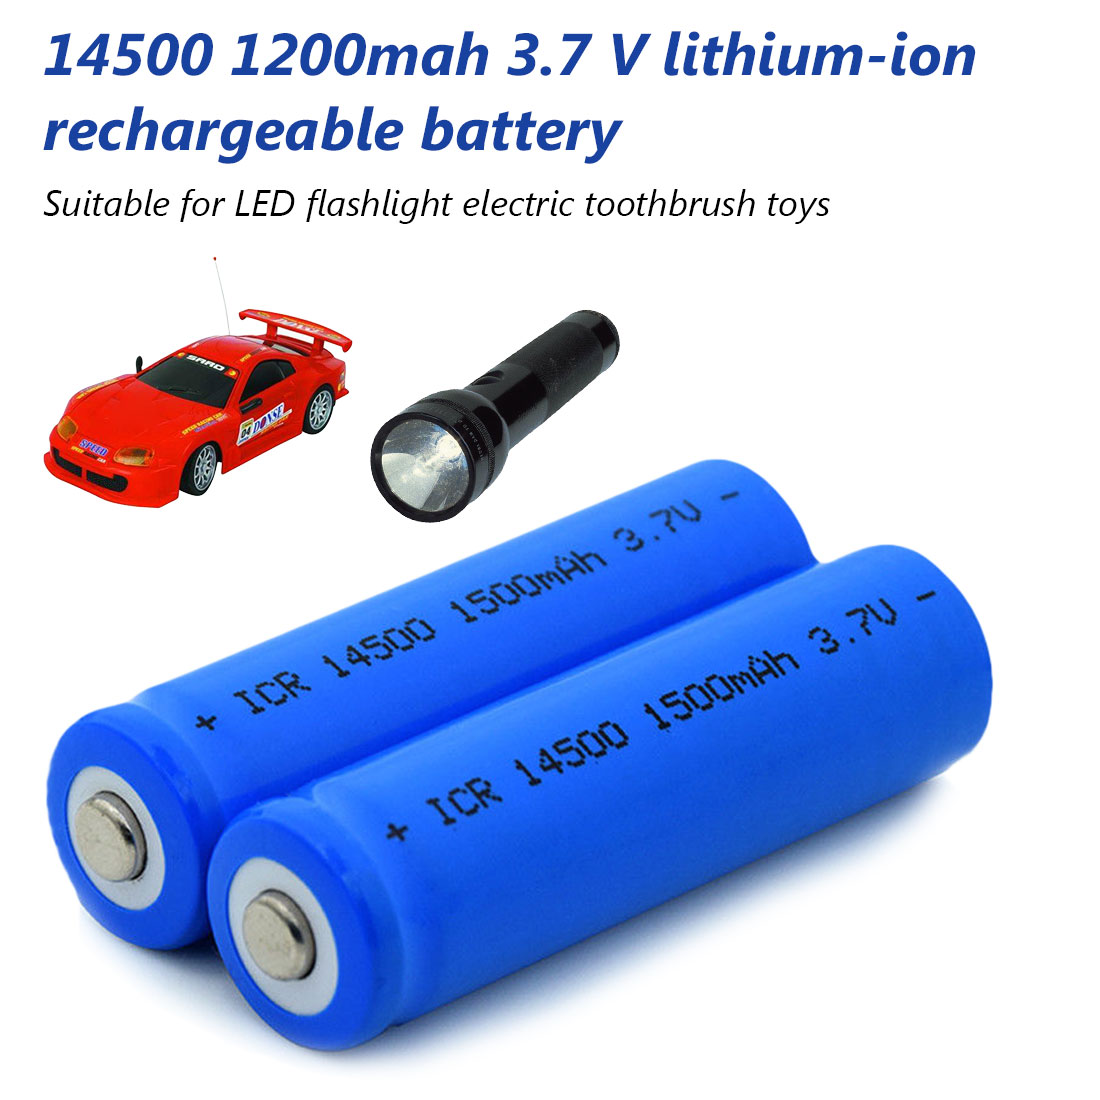 1/2 /4/8/12pcs/set High Capacitance <font><b>14500</b></font> <font><b>Battery</b></font> 3.7V 1200mAh Rechargeable <font><b>li</b></font>-<font><b>ion</b></font> <font><b>Battery</b></font> for Led Flashlight <font><b>Battery</b></font> image